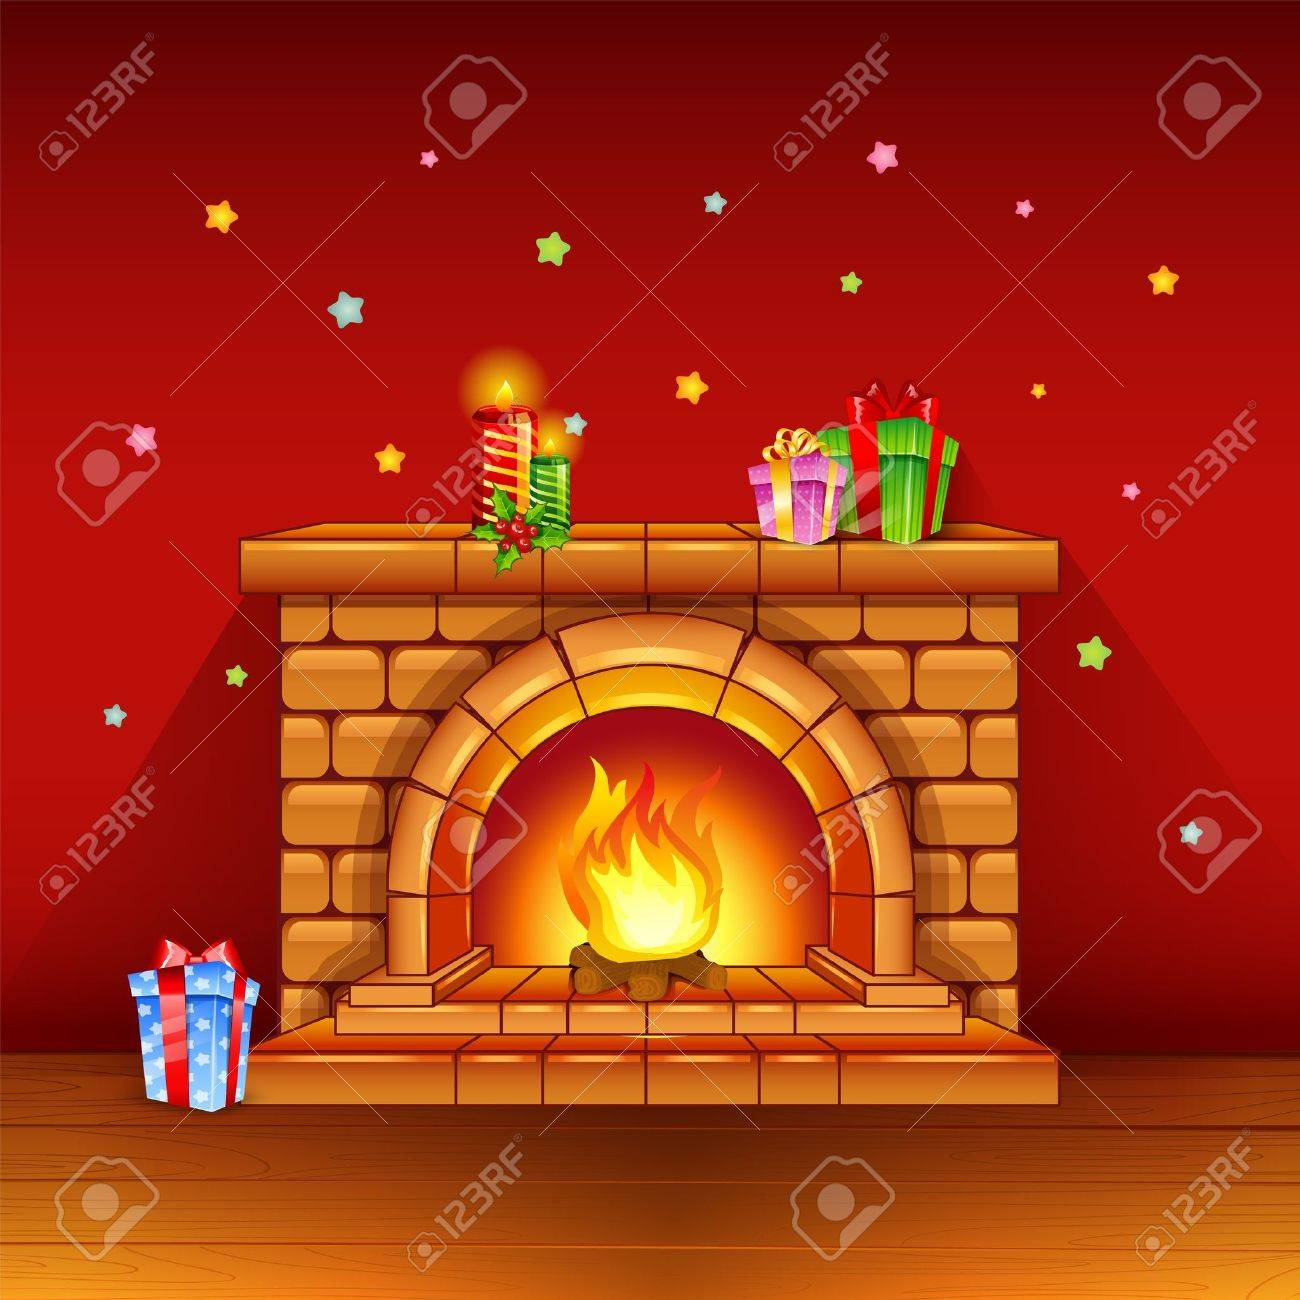 fireplace with candles and gifts on red background royalty free